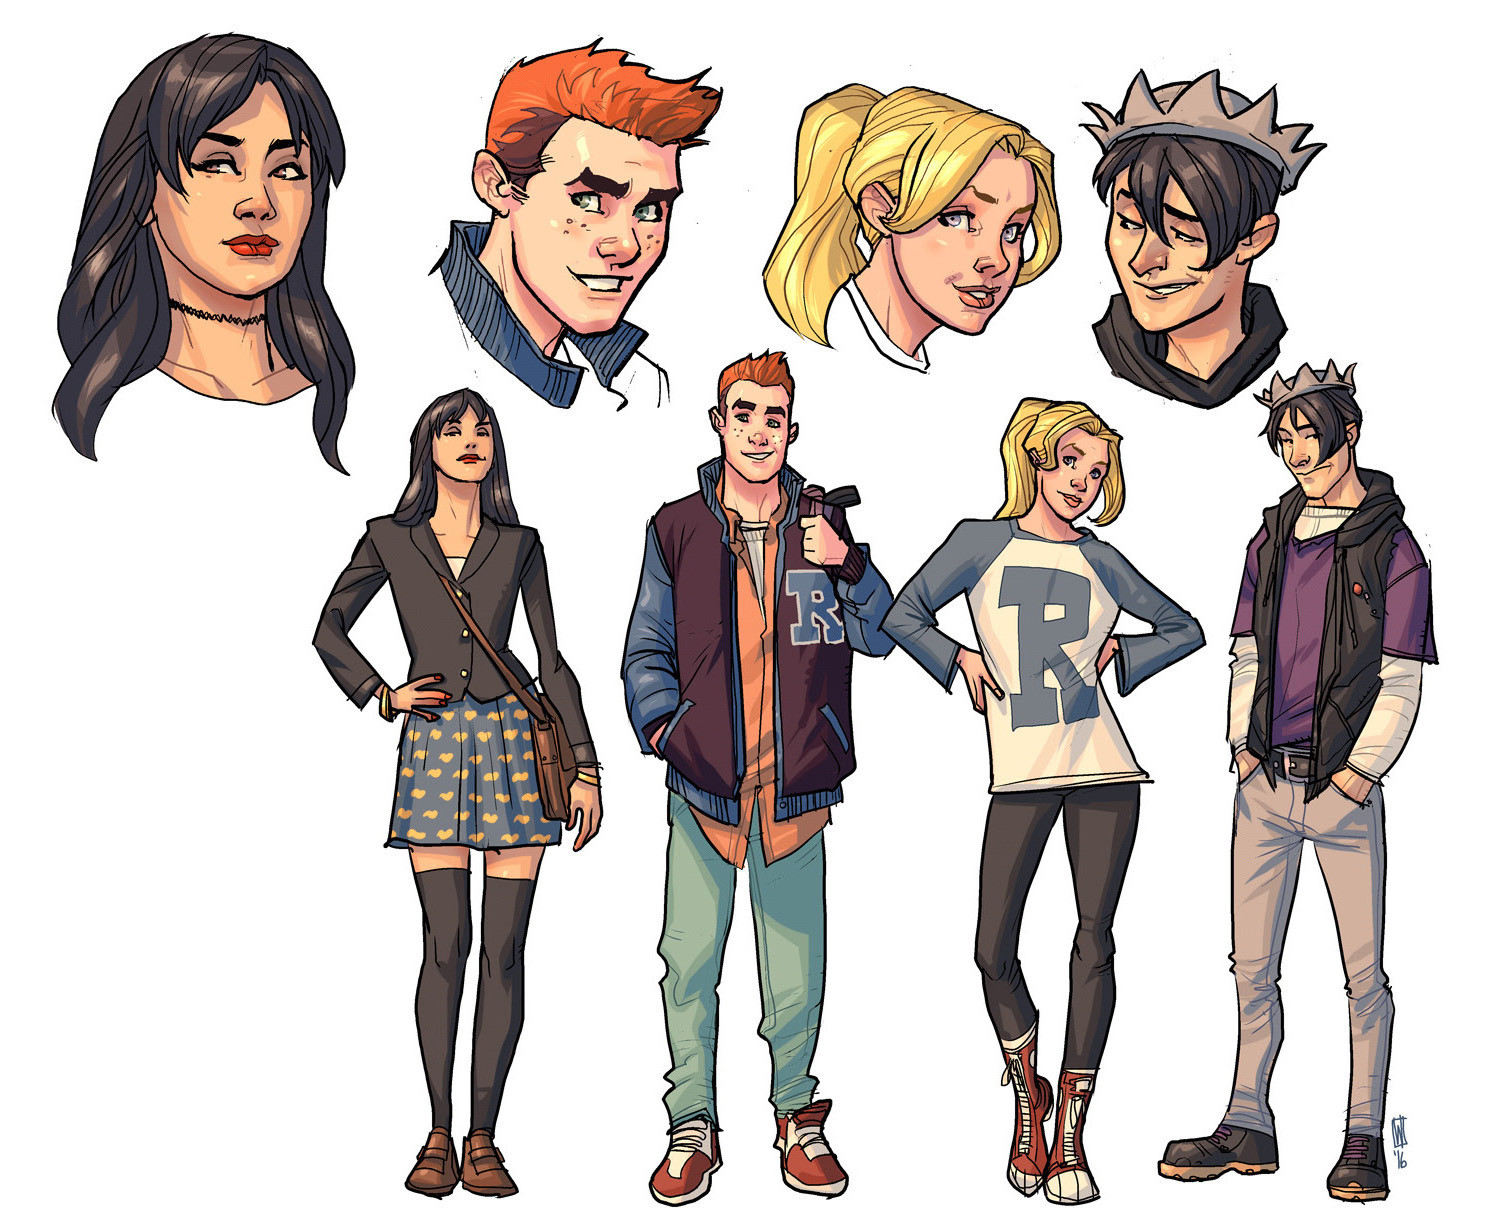 The Archie gang updated.